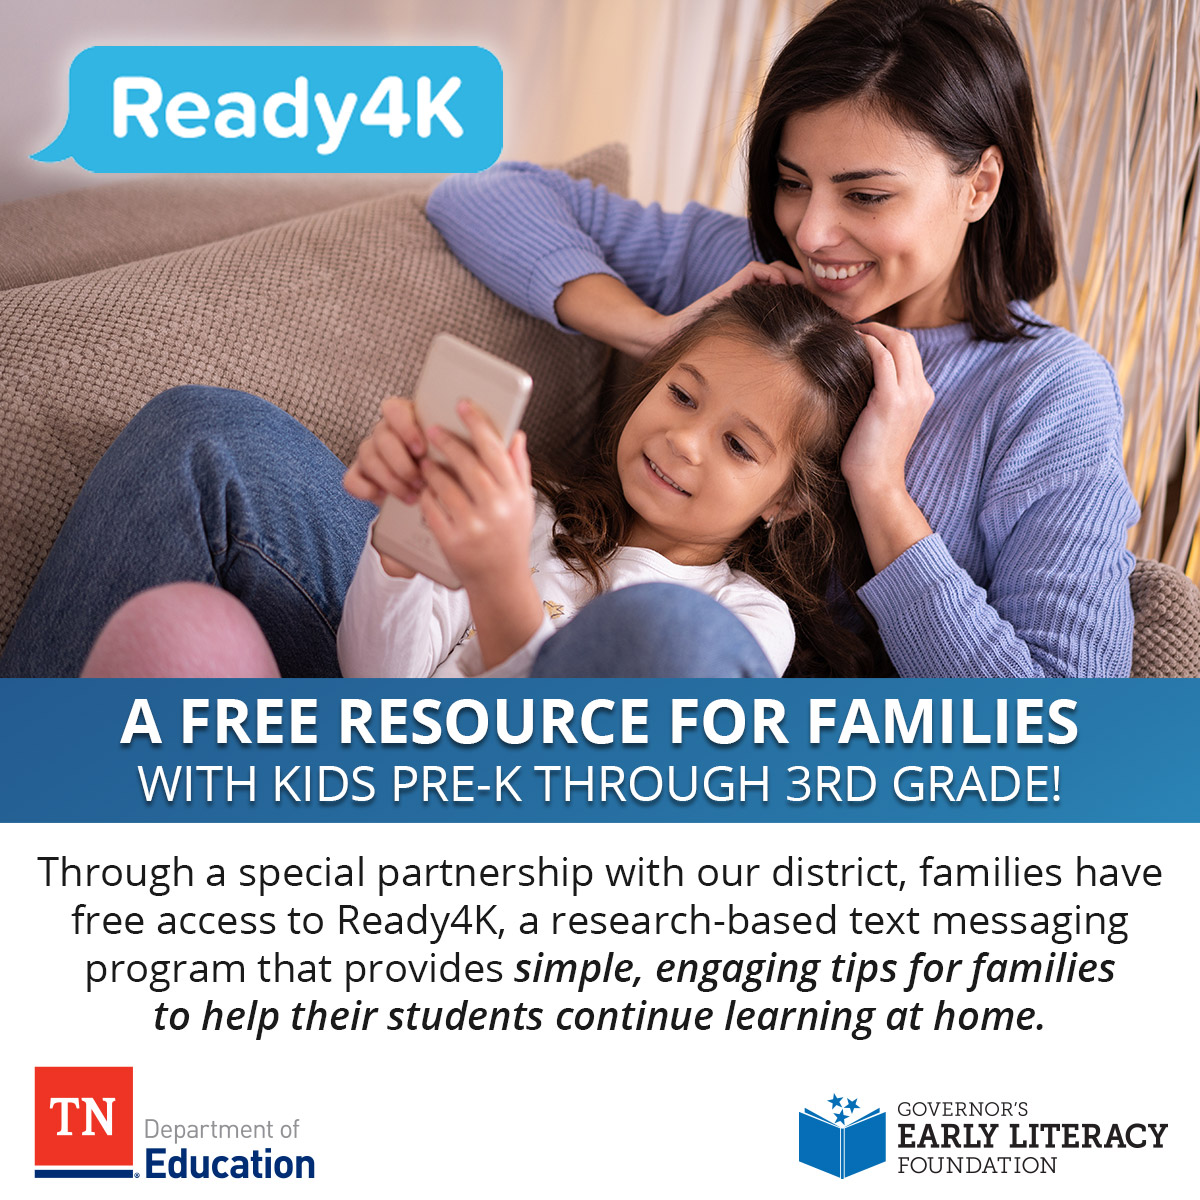 All HCS families with students in pre-K through 3rd grade will begin receiving weekly tips and activities from @Ready4K to support your child's learning. We are thrilled to offer this free, evidence-based family curriculum thanks to @TNedu and @GovLiteracyTN.